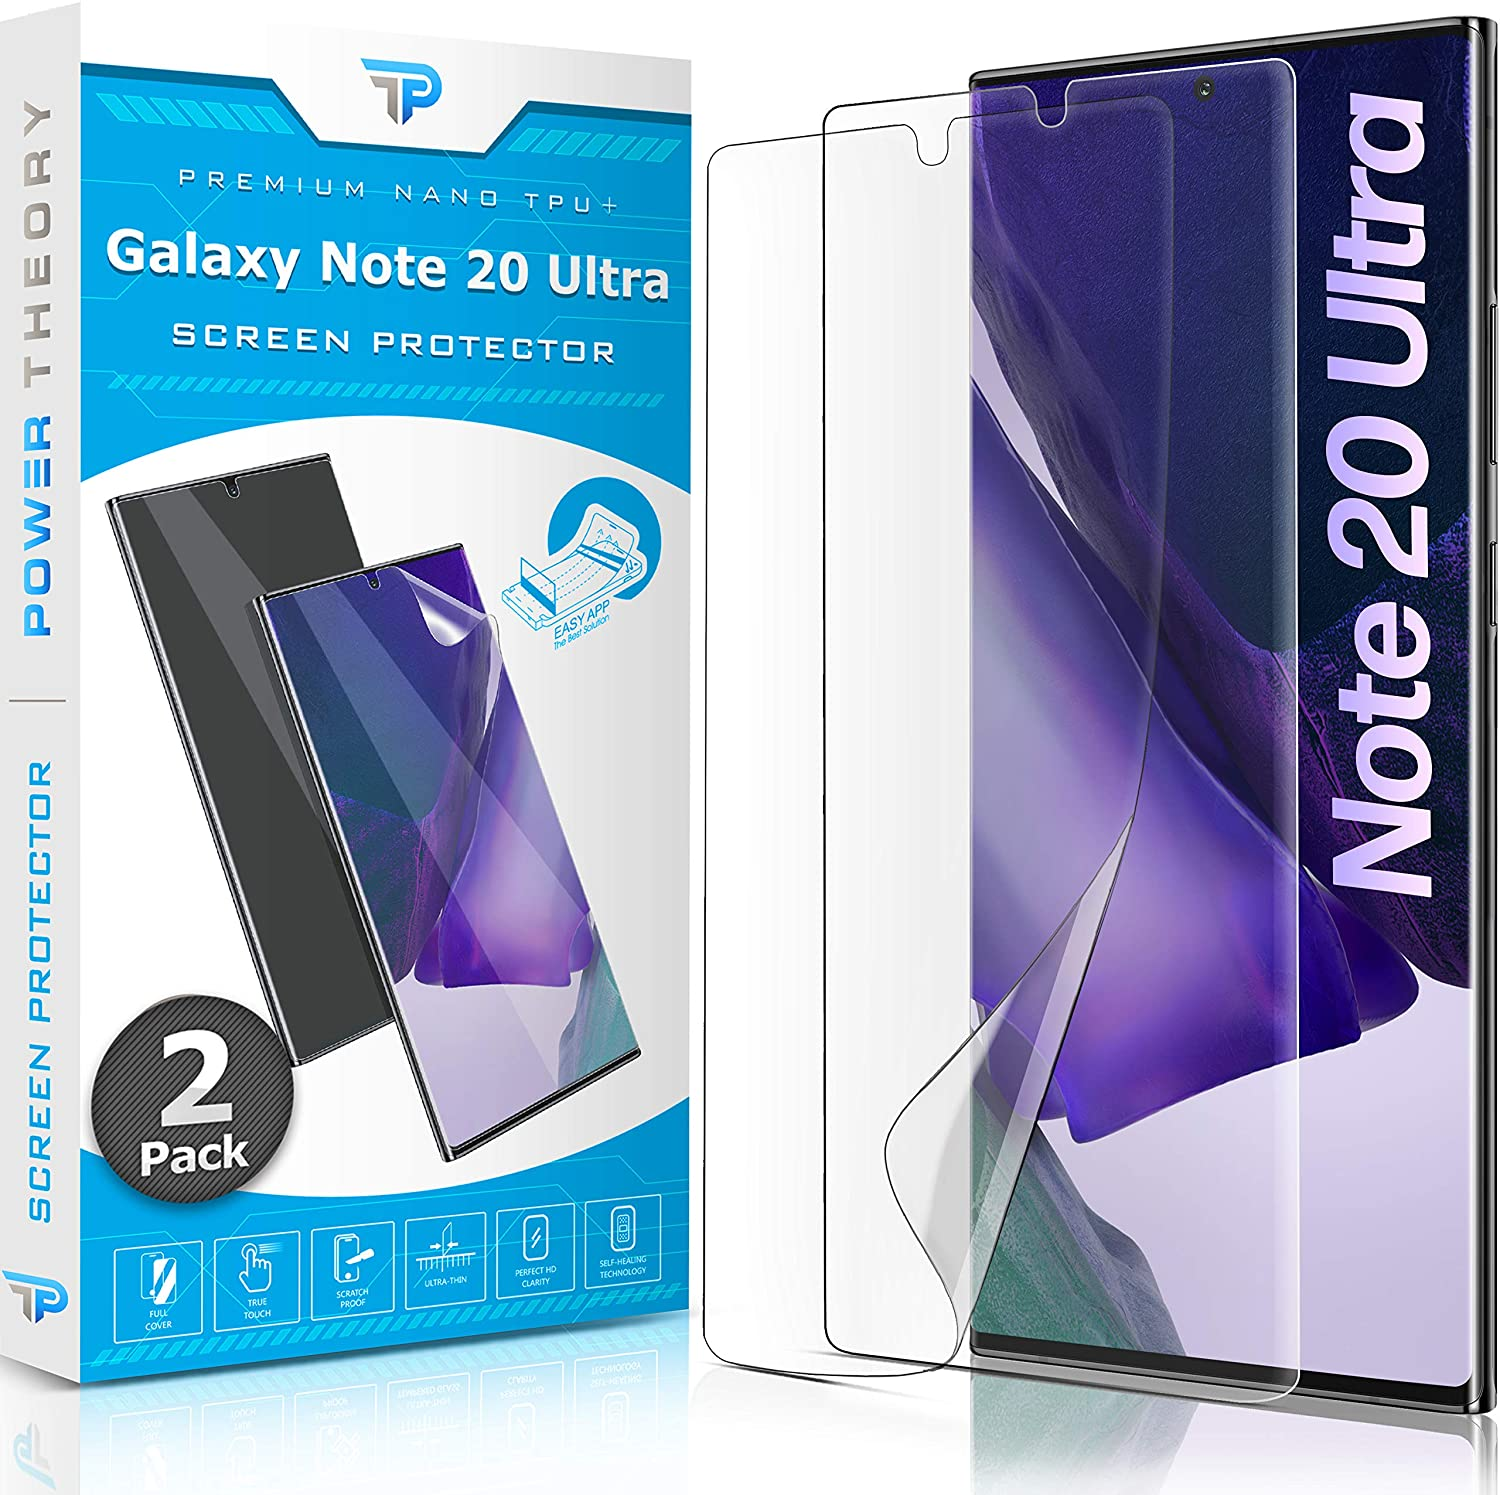 Power Theory Screen Protector Film for Samsung Galaxy Note 20 ULTRA [2-pack]